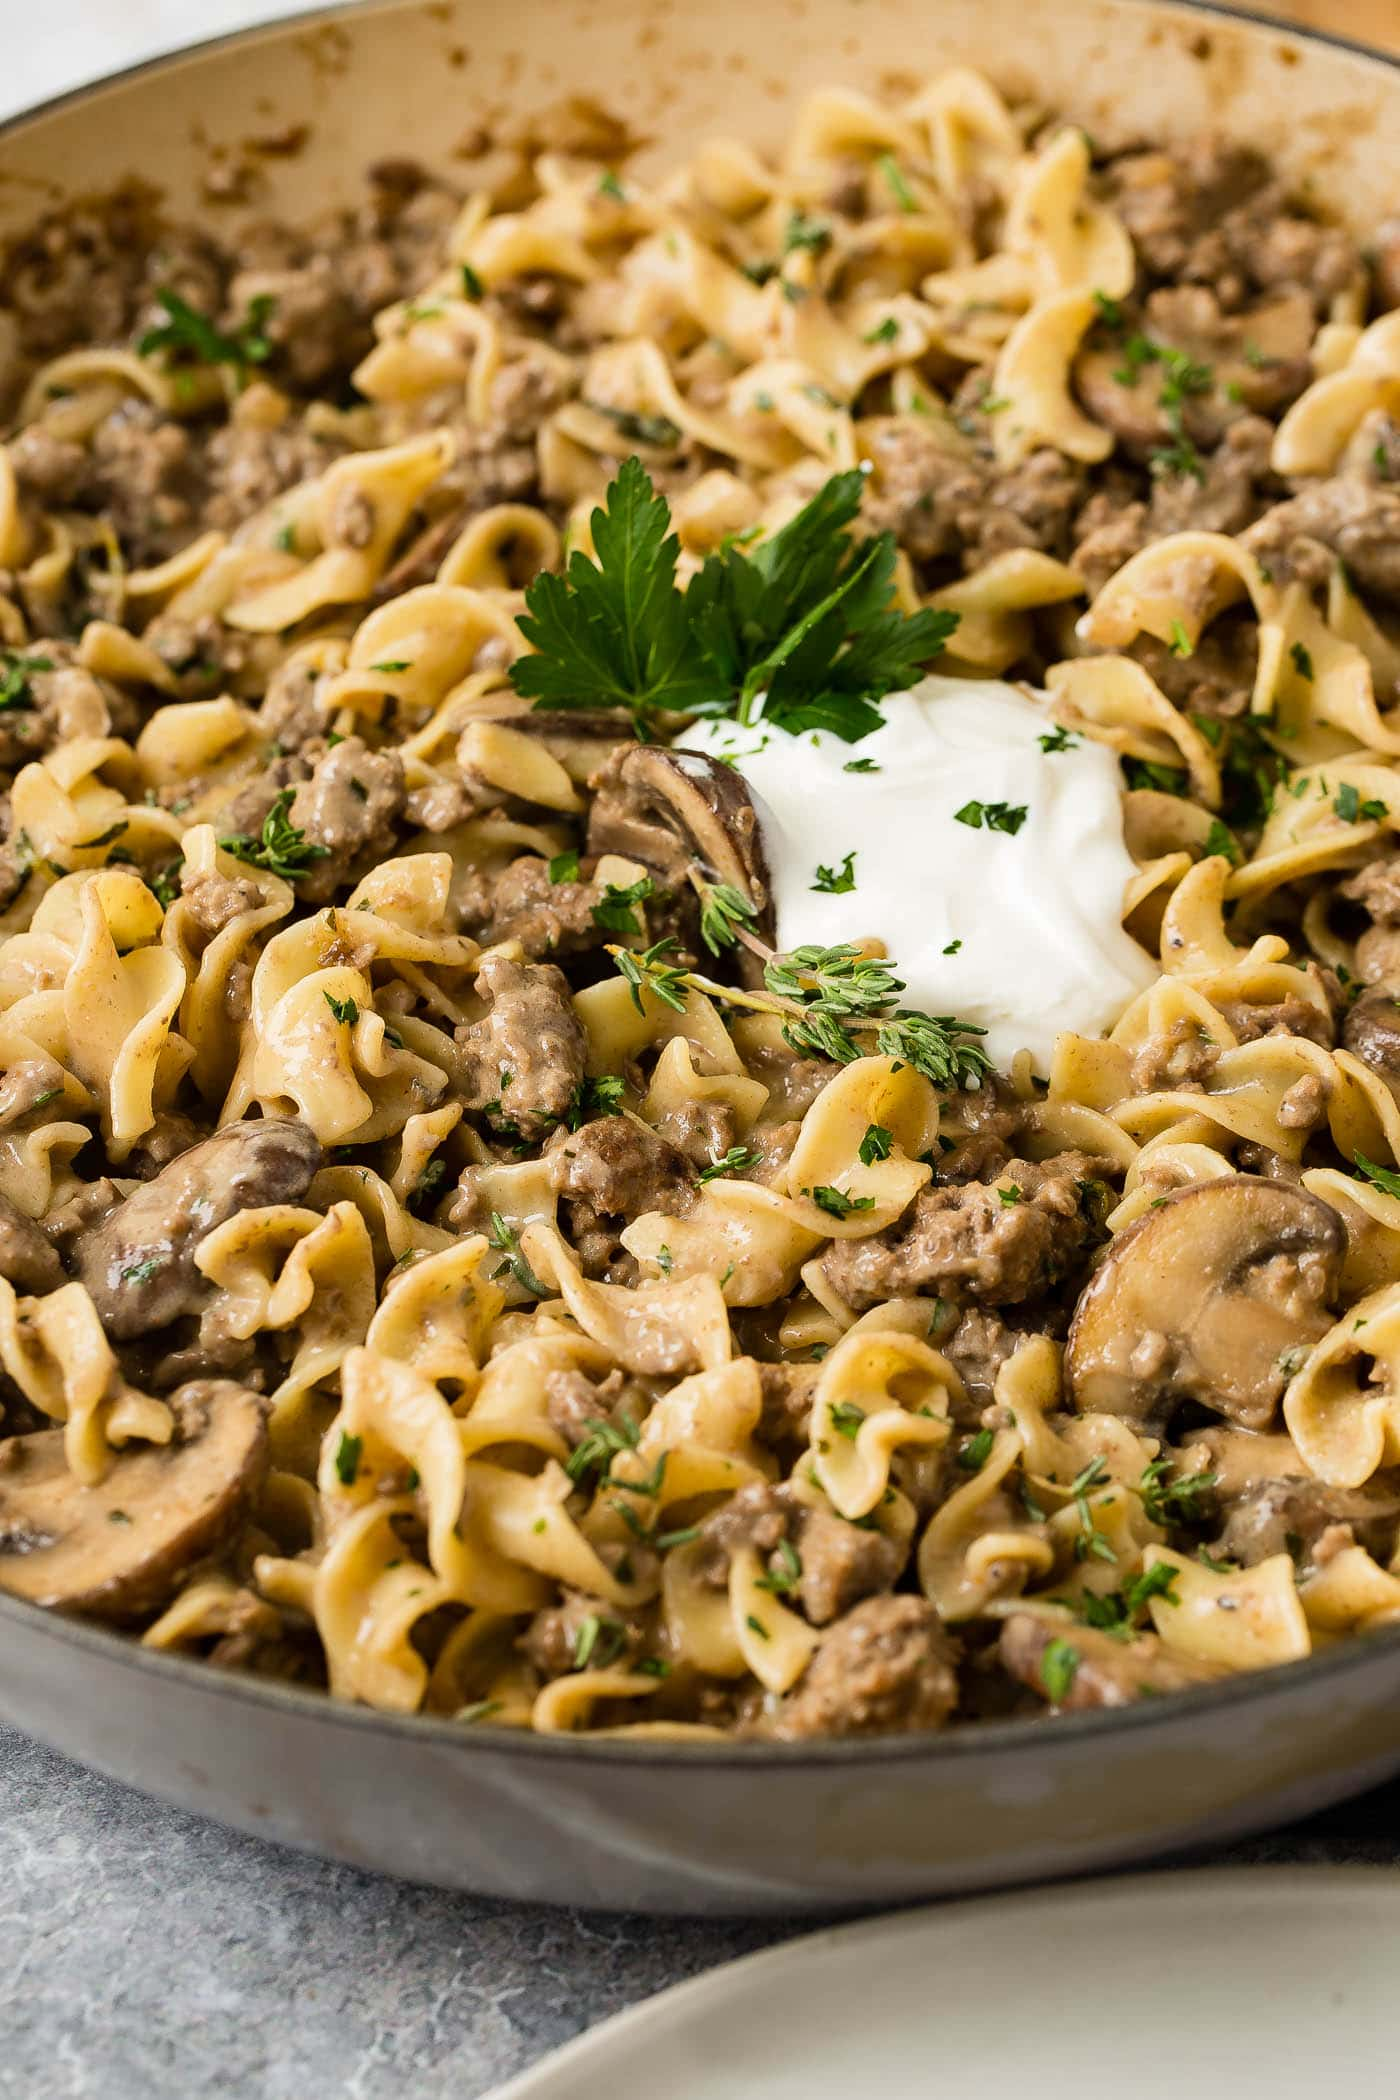 A close-up of a bowl of ground beef stroganoff. There are noodles, ground beef and mushrooms in a sauce with a spoonful of sour cream and parsley flakes on top.